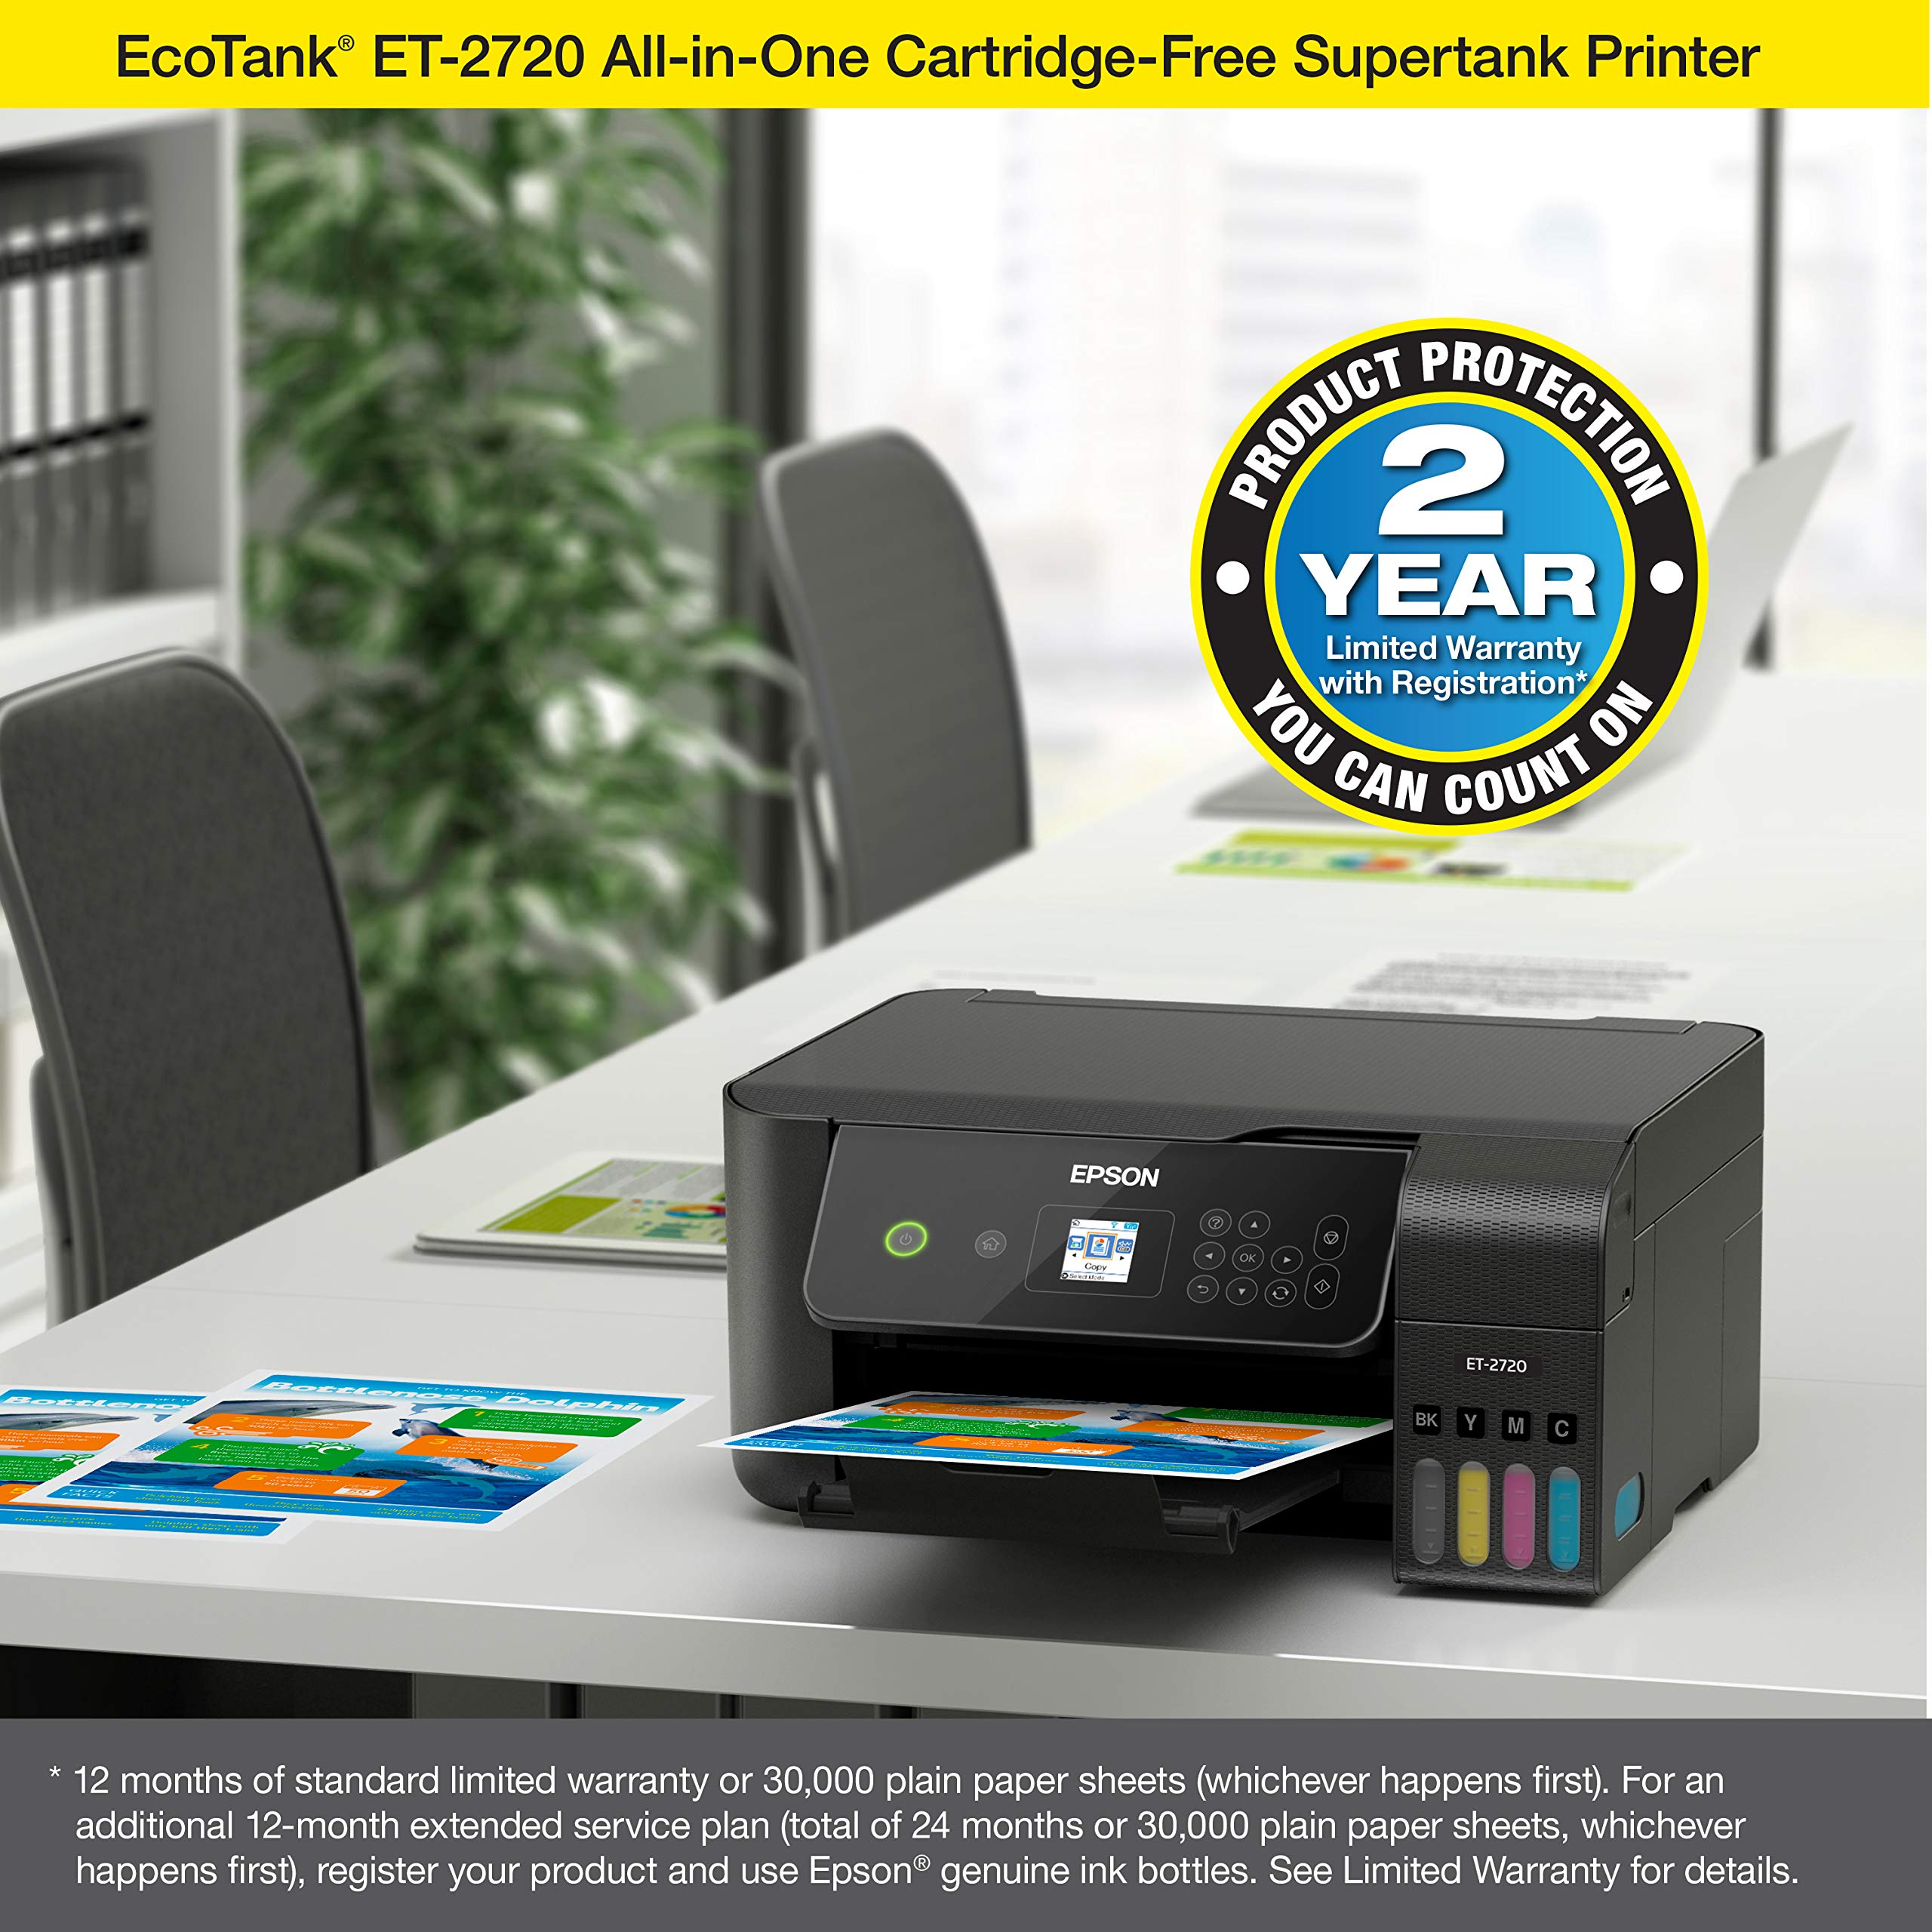 Epson EcoTank ET-2720 Wireless Color All-in-One Supertank Printer with Scanner and Copier - Black by Epson (Image #6)